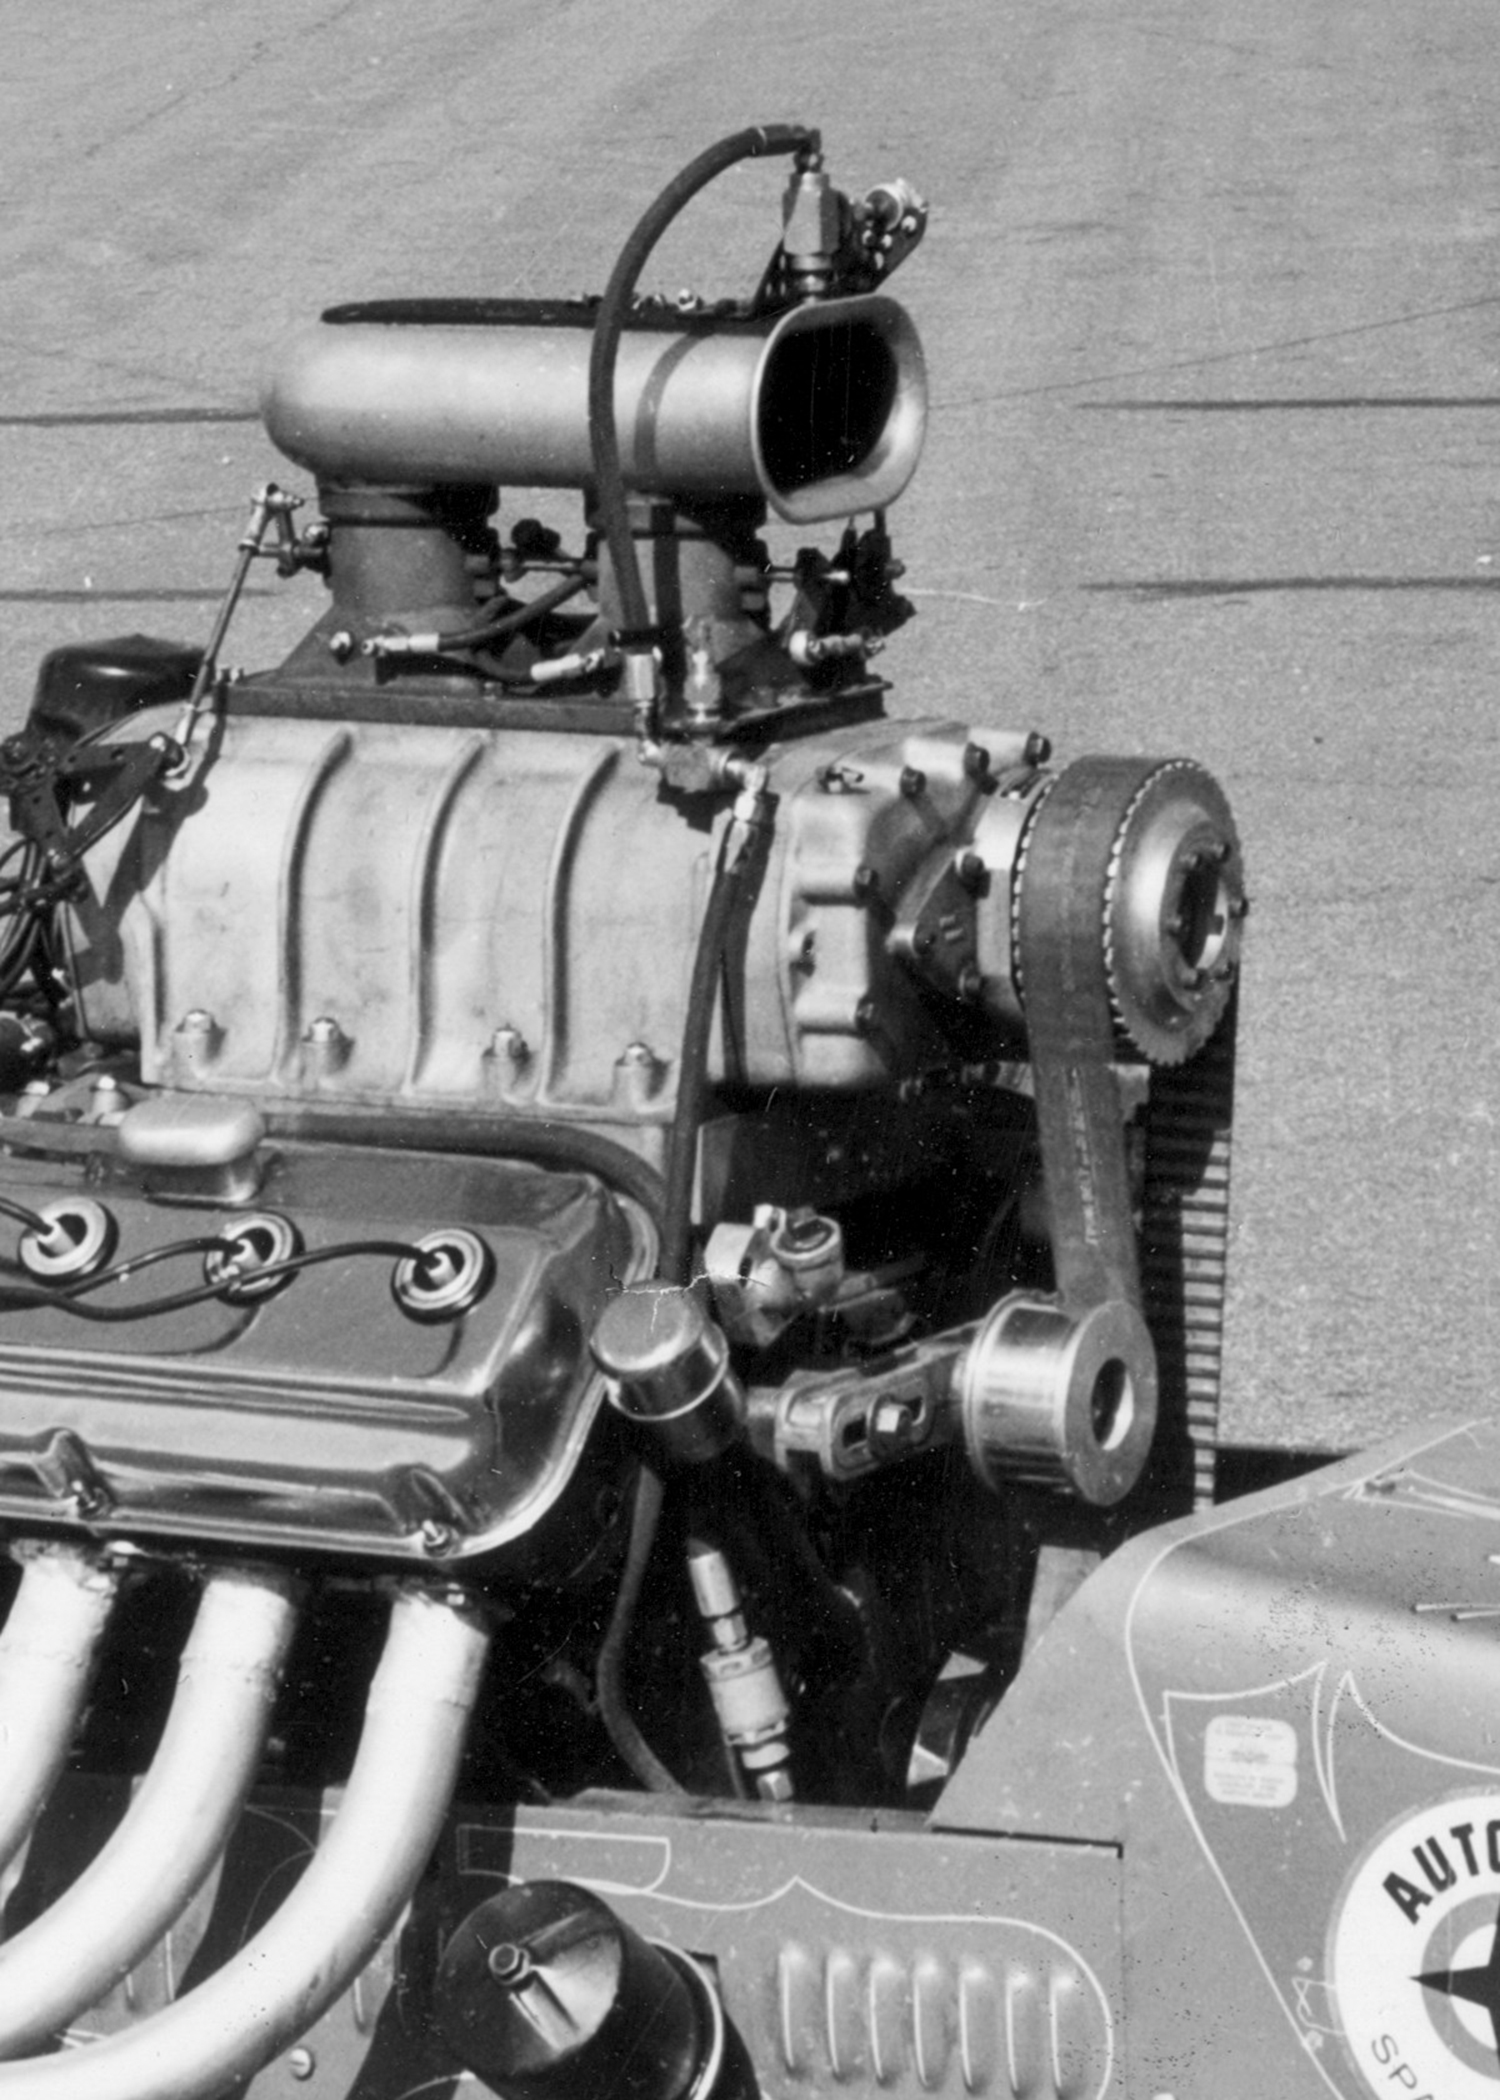 Jack Hordemann's nitrous design was as hard to ignore as Dick Flynn's was to find, yet nobody seemed to notice. The fogger-style system also exploited the latent heat of evaporation caused by fluid transforming to gas as a means to cool the entire intake tract.